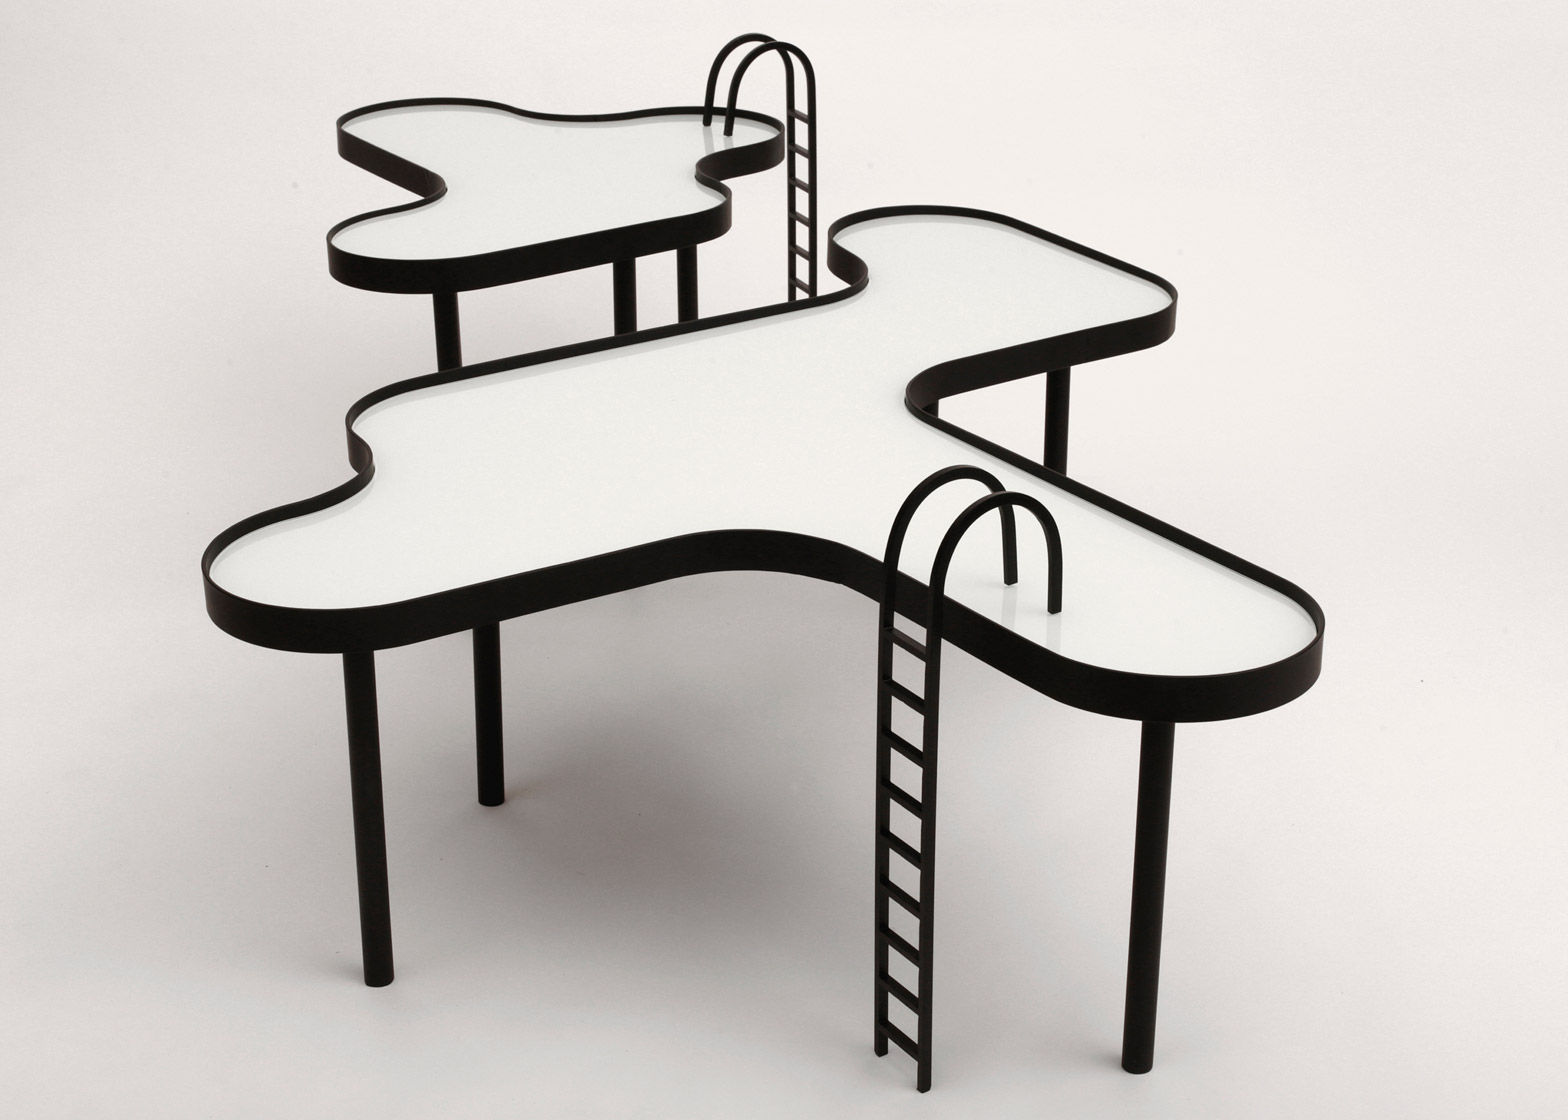 Swimming Pool Shaped Tables By Rain Include Removable Ladders